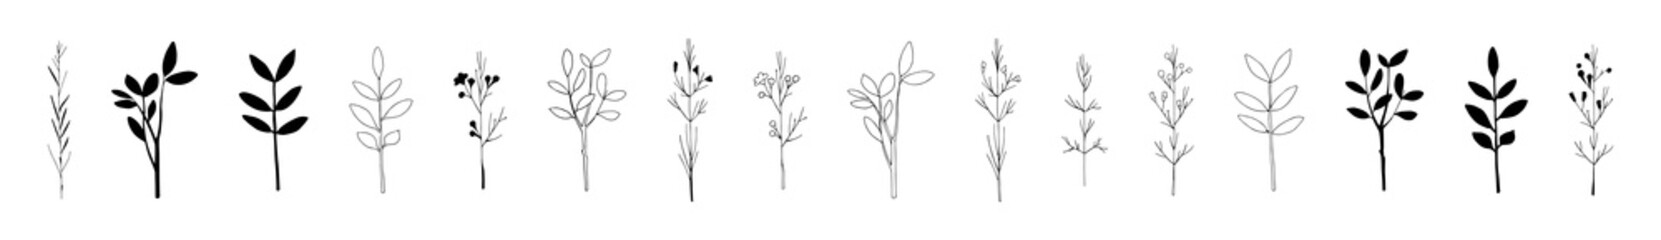 Set of hand drawn herbs. Contour and silhouette. Collection, assortment, pack of floral vector elements isolated on white. Black and white. Decorations for greeting cards, invitations, tea packaging